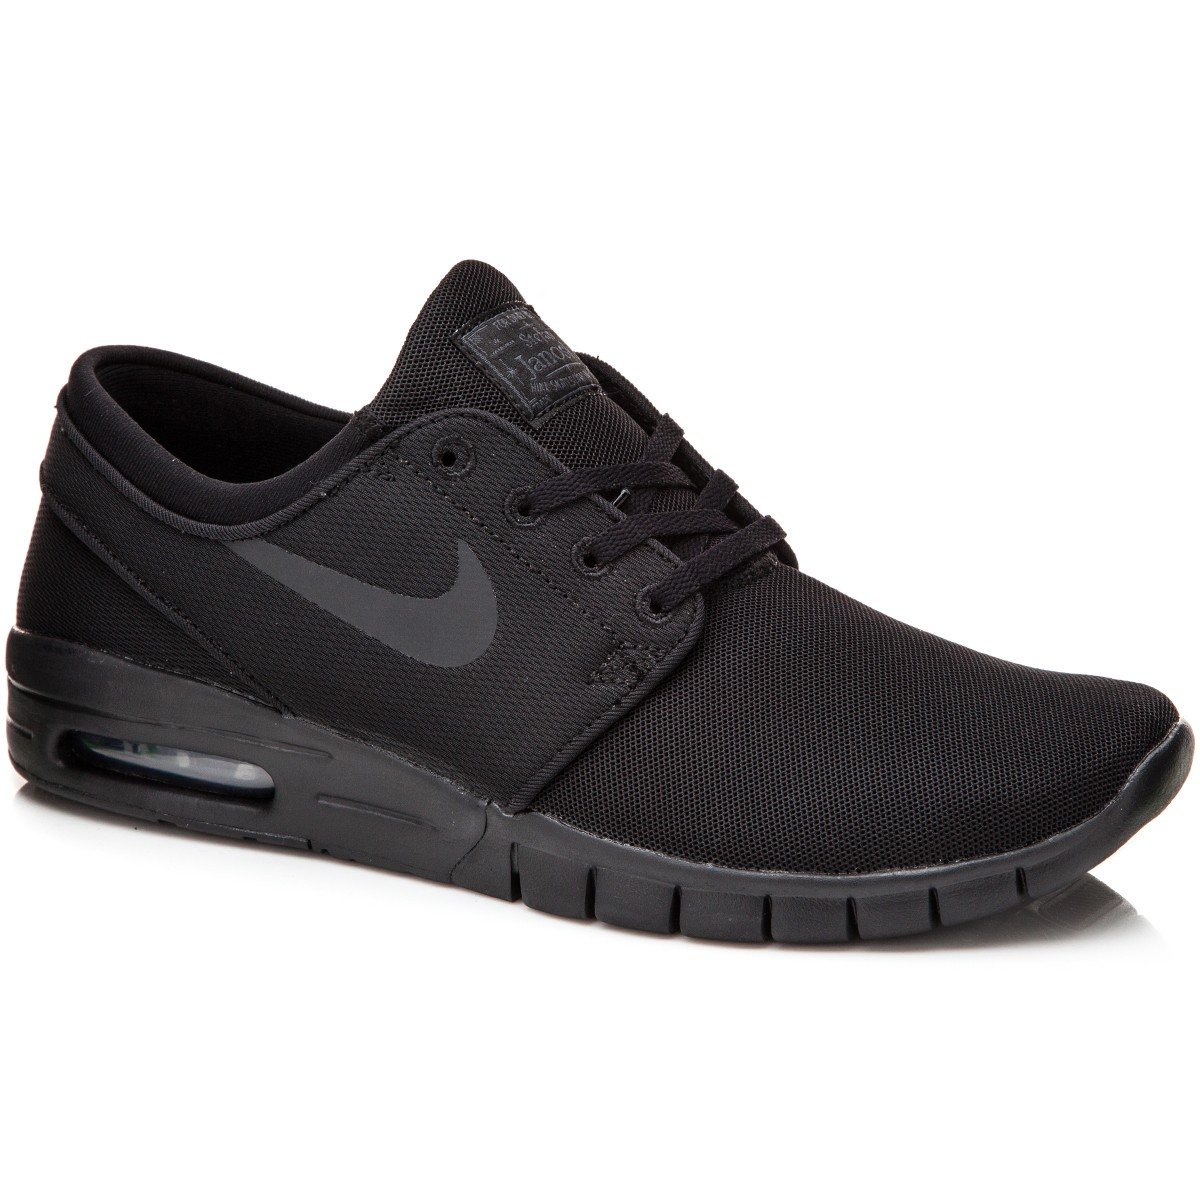 More information ccs janoski max about nike air jordan team elite ii low nike sb stefan janoski max shoes including release dates, prices and more. Shop Nike SB at Eastbay. Today, the